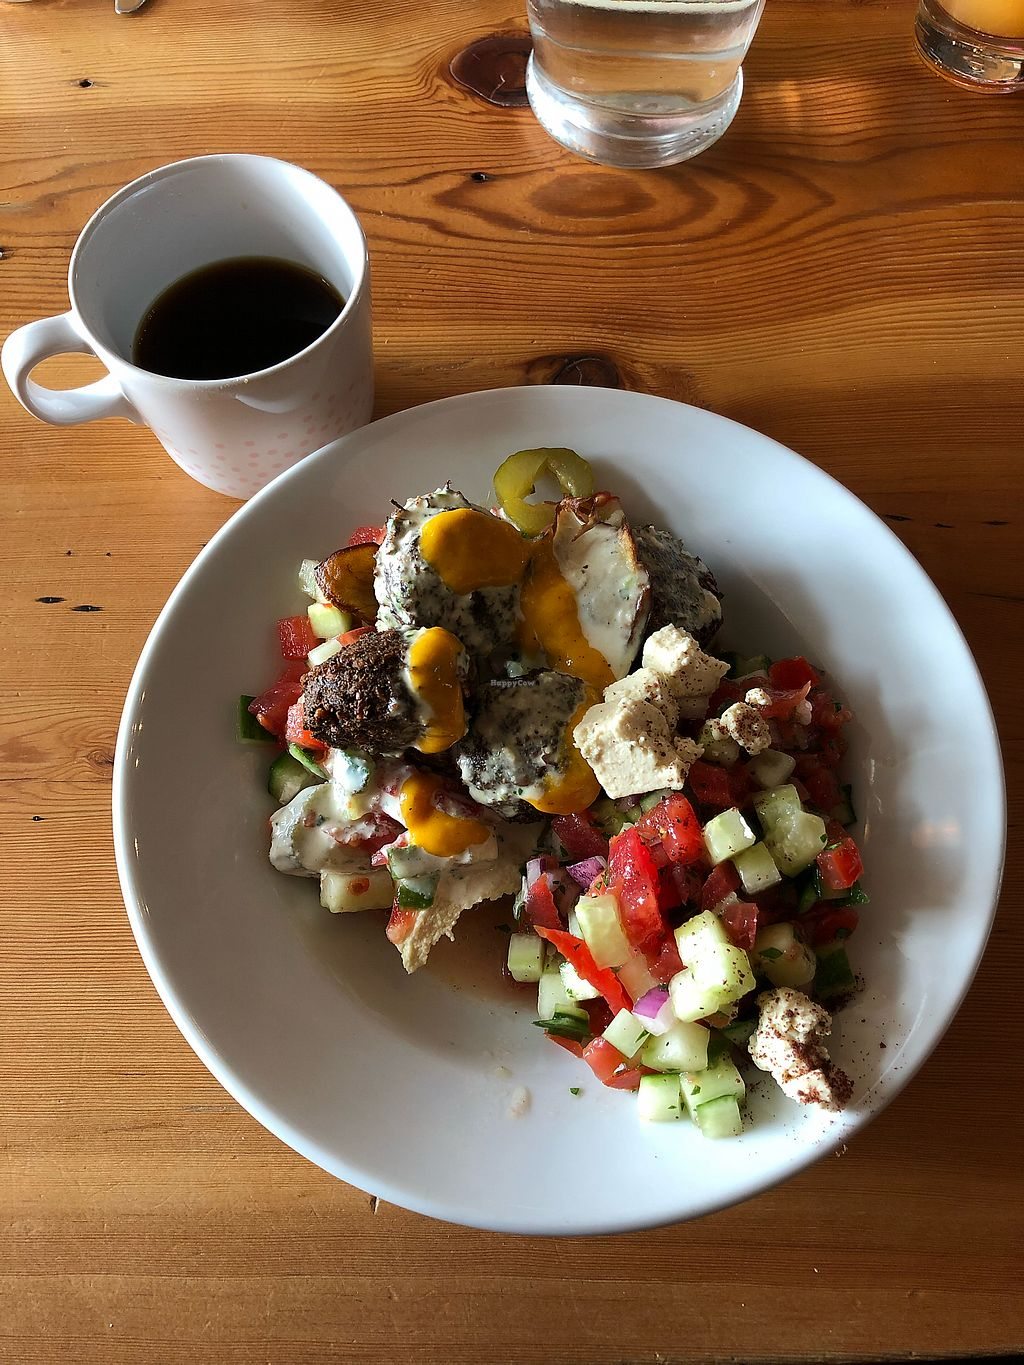 """Photo of Aviv  by <a href=""""/members/profile/kittenteeth"""">kittenteeth</a> <br/>Falafel bowl for brunch <br/> March 19, 2018  - <a href='/contact/abuse/image/93167/372745'>Report</a>"""